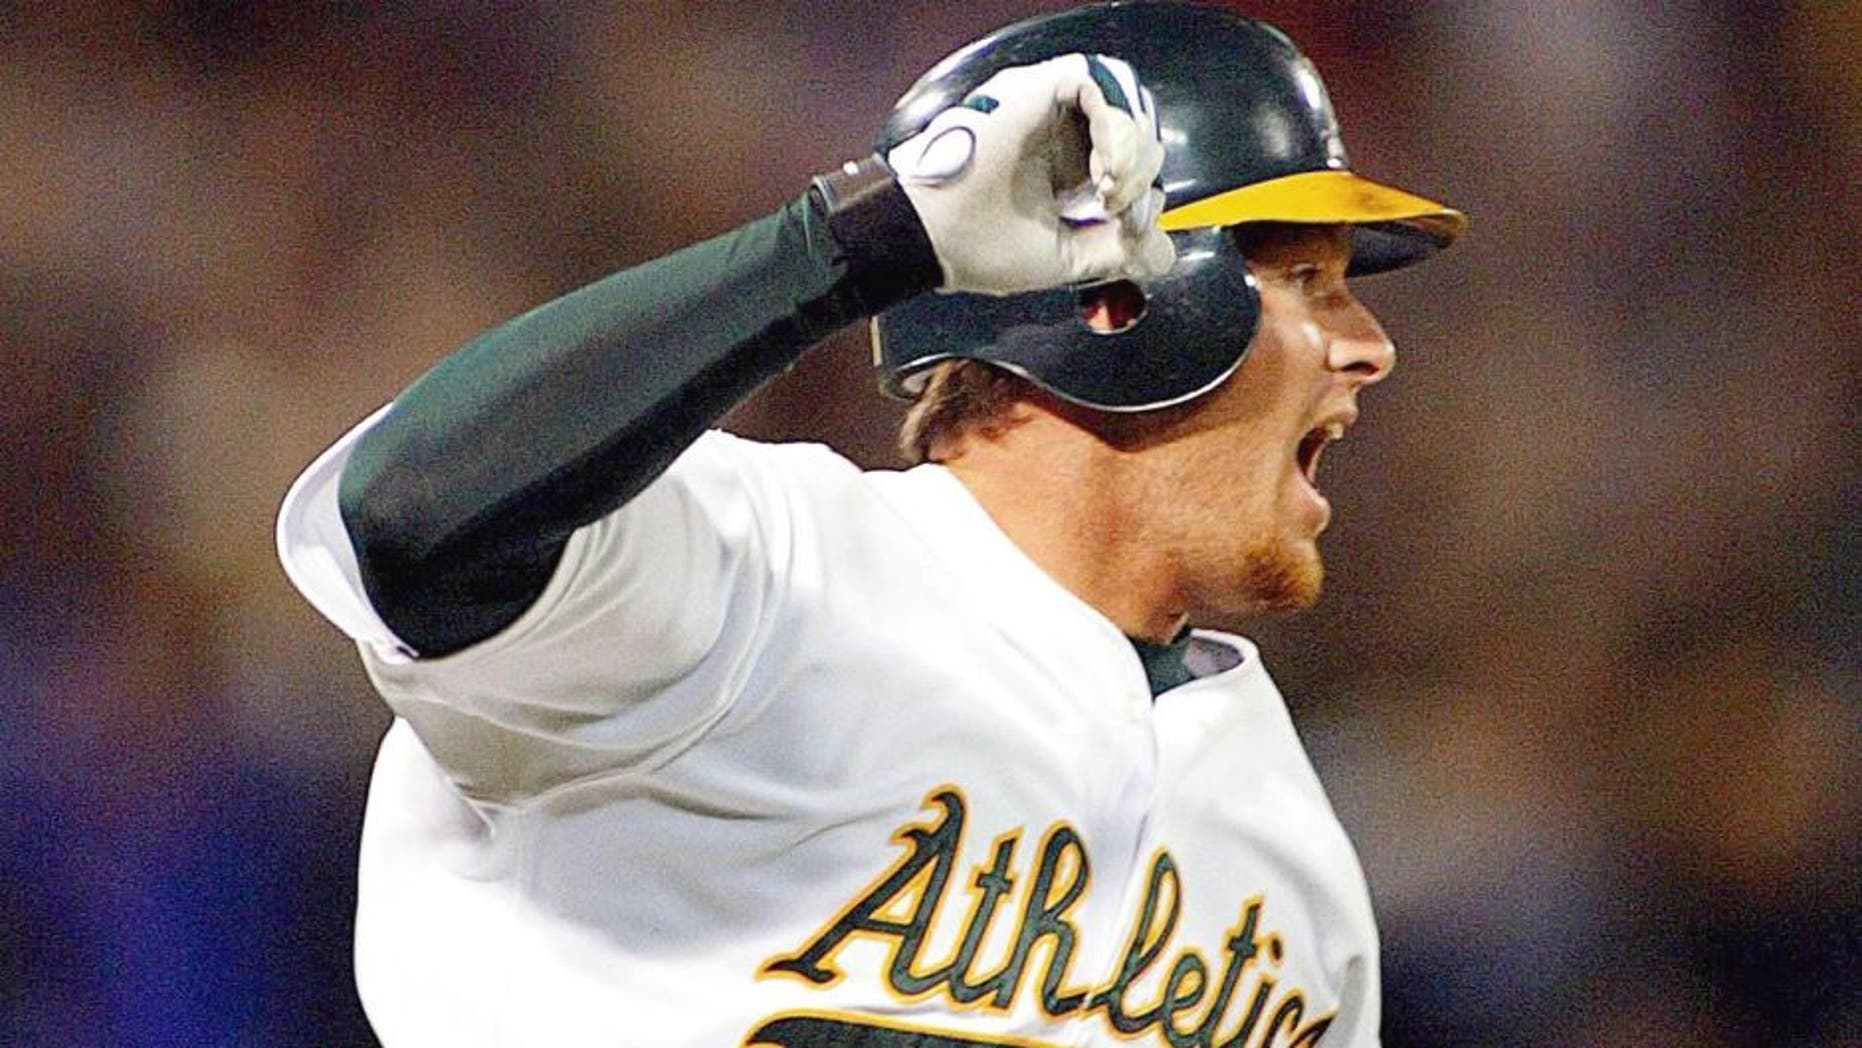 OAKLAND, UNITED STATES: Oakland Athletics' Scott Hatteberg raises his arms after hitting the game winning homerun against the Kansas City Royals 04 September 2002 during the bottom of the ninth inning off Royals' pitcher Jason Grimsley. It was the Athletics' 20th record straight win for the American League. The A's defeated the Royals 12-11. AFP PHOTO/John G. MABANGLO (Photo credit should read JOHN G. MABANGLO/AFP/Getty Images)